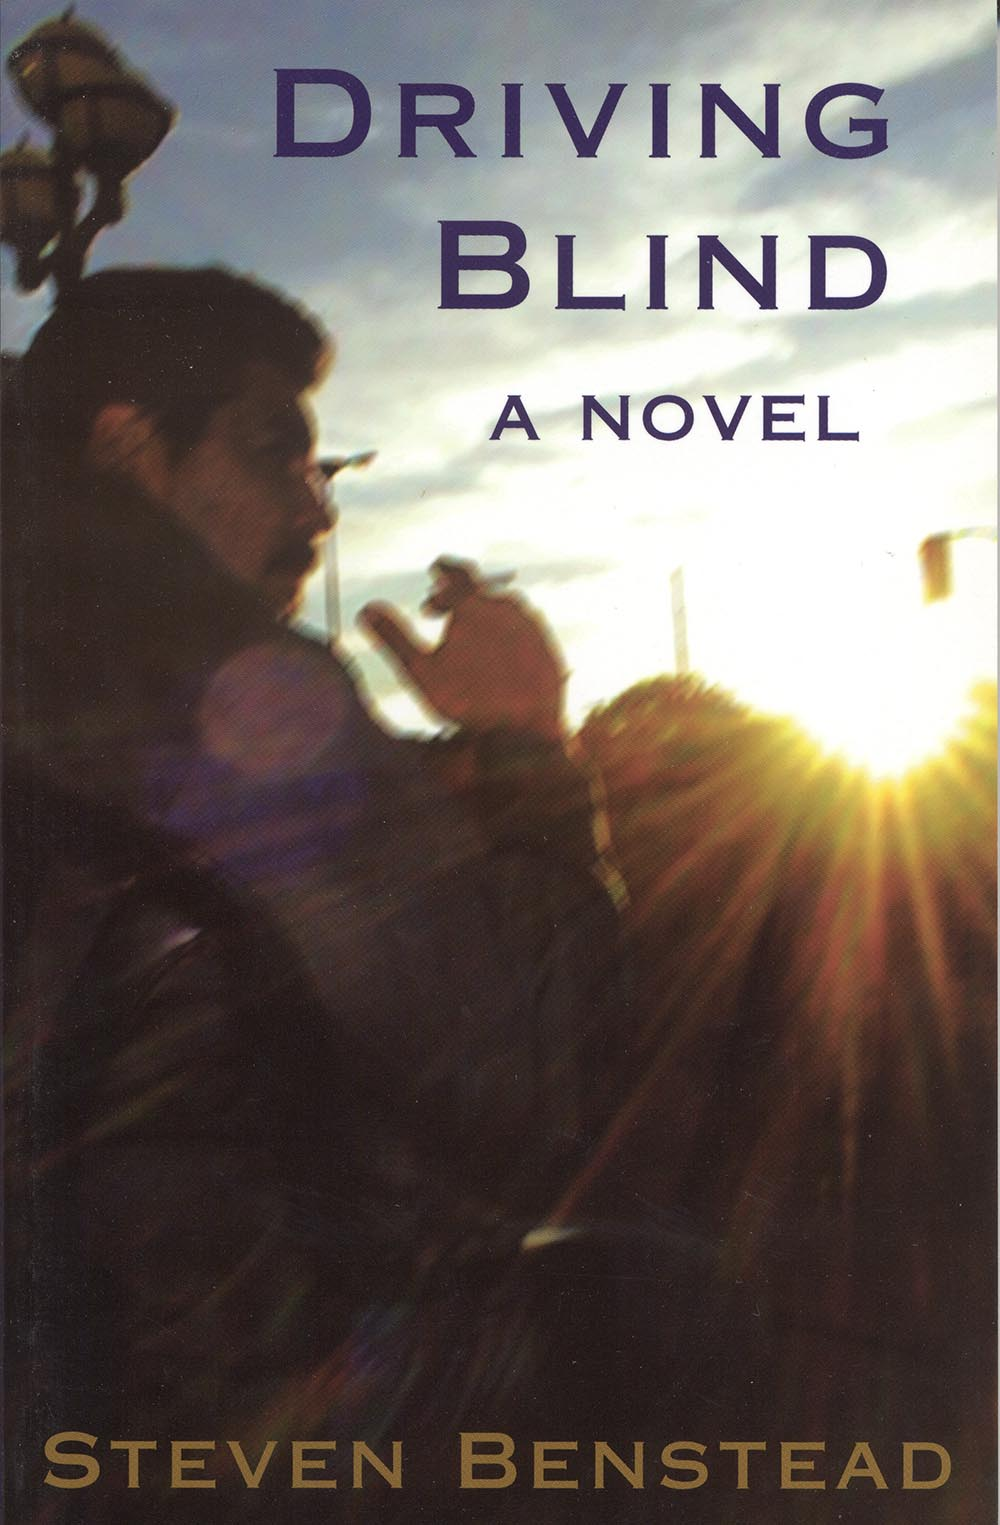 Driving Blind by Steven Benstead